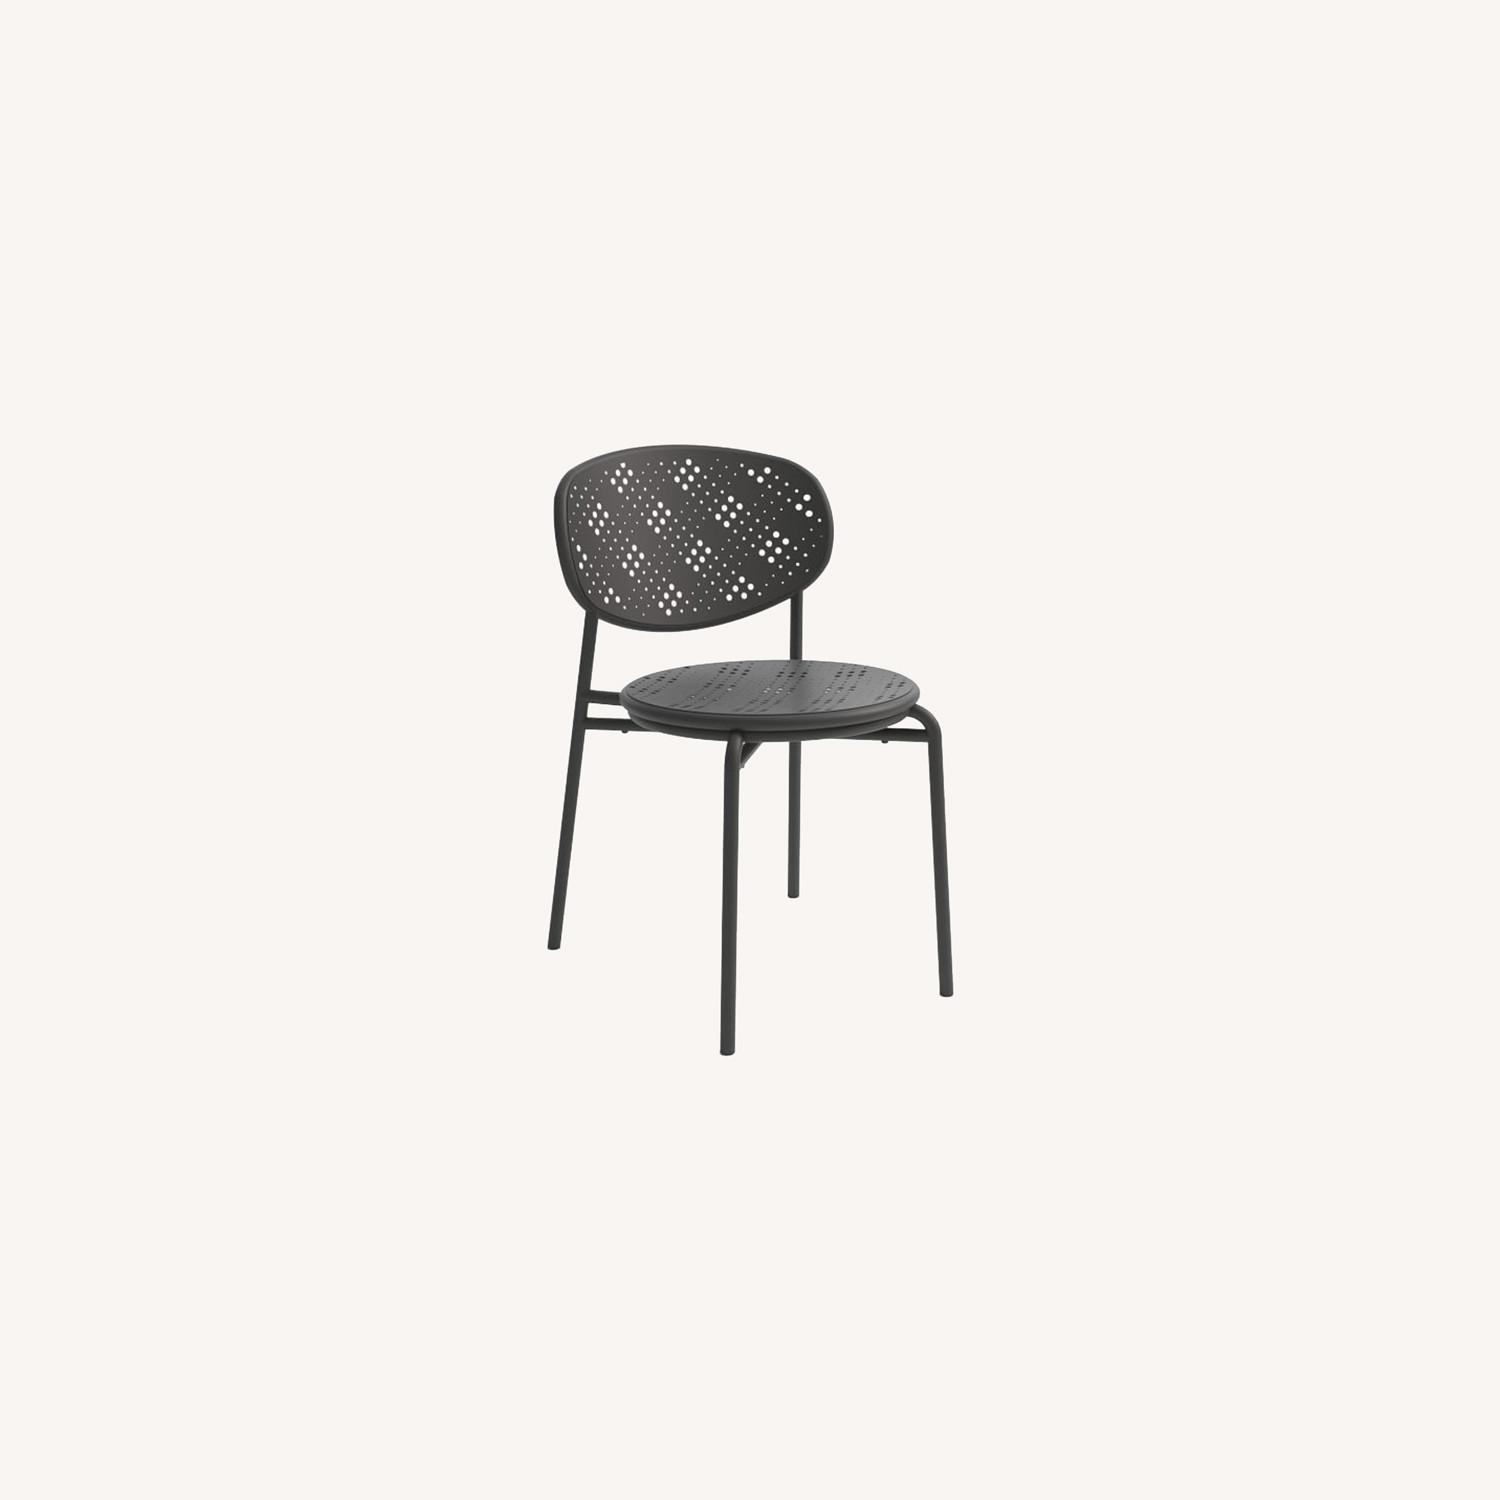 West Elm Cagney Outdoor Stacking Chair, Peppercorn - image-0